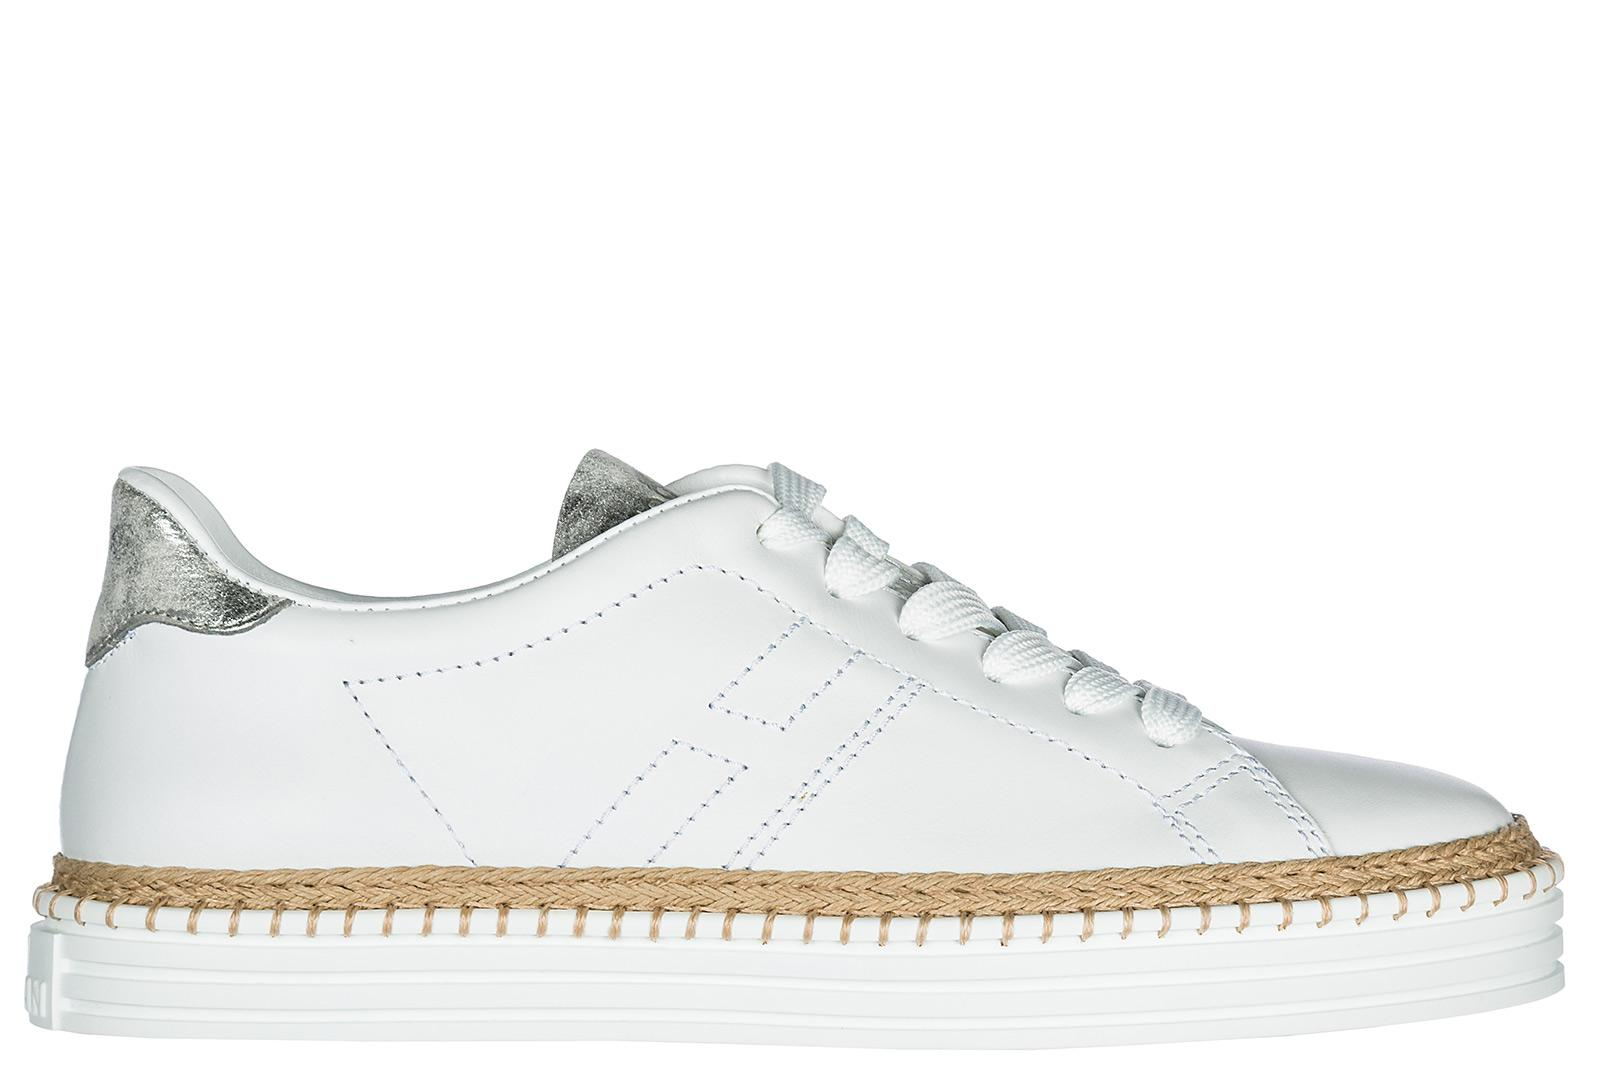 Hogan Women's Shoes Leather Trainers Sneakers R260 In White